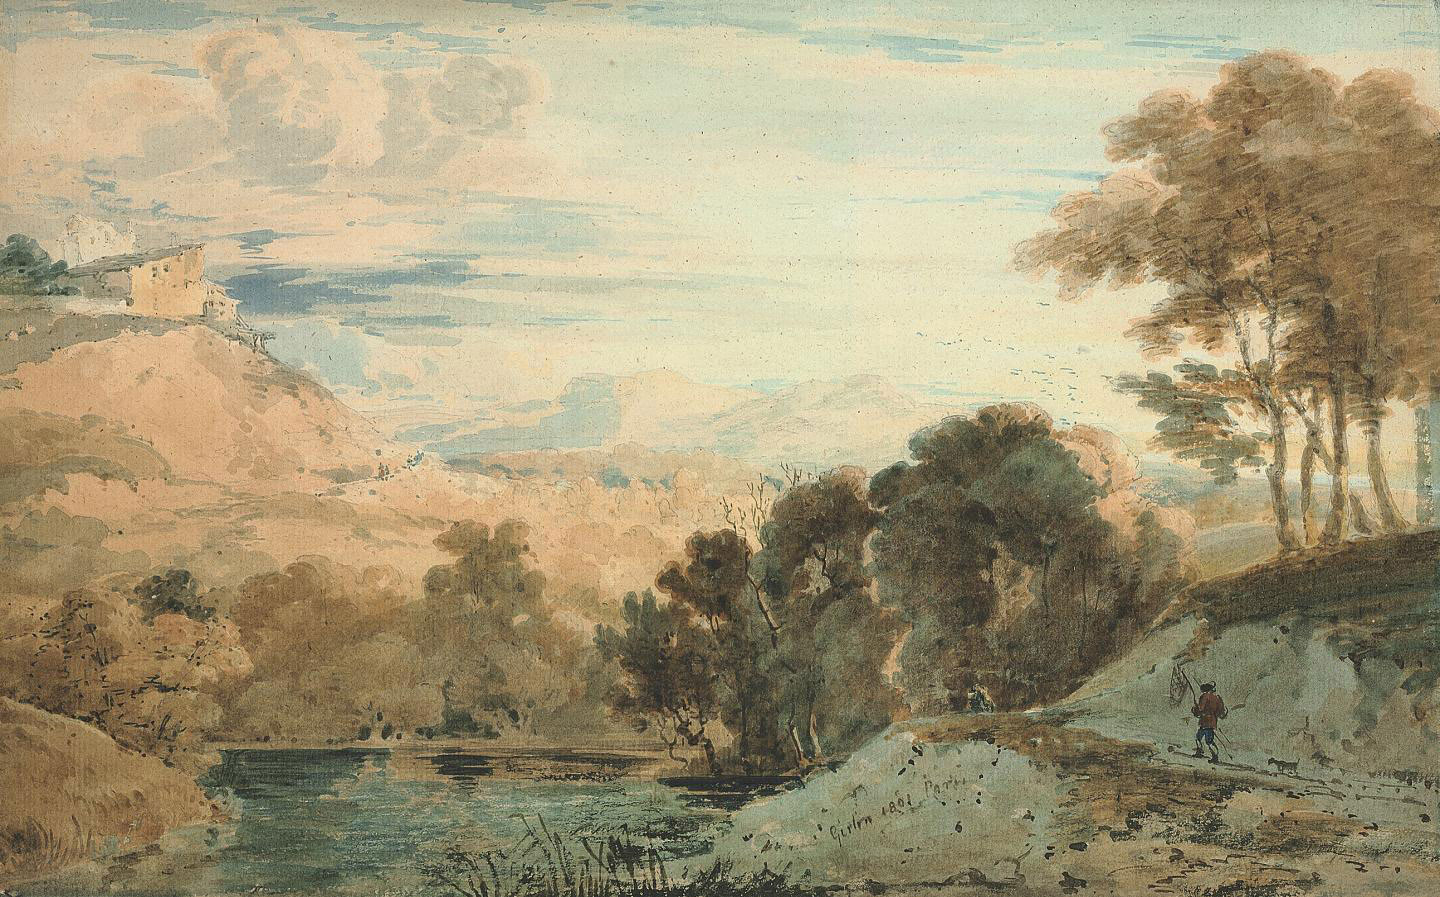 An angler by a wooded river in an extensive landscape, with buildings on a hill beyond